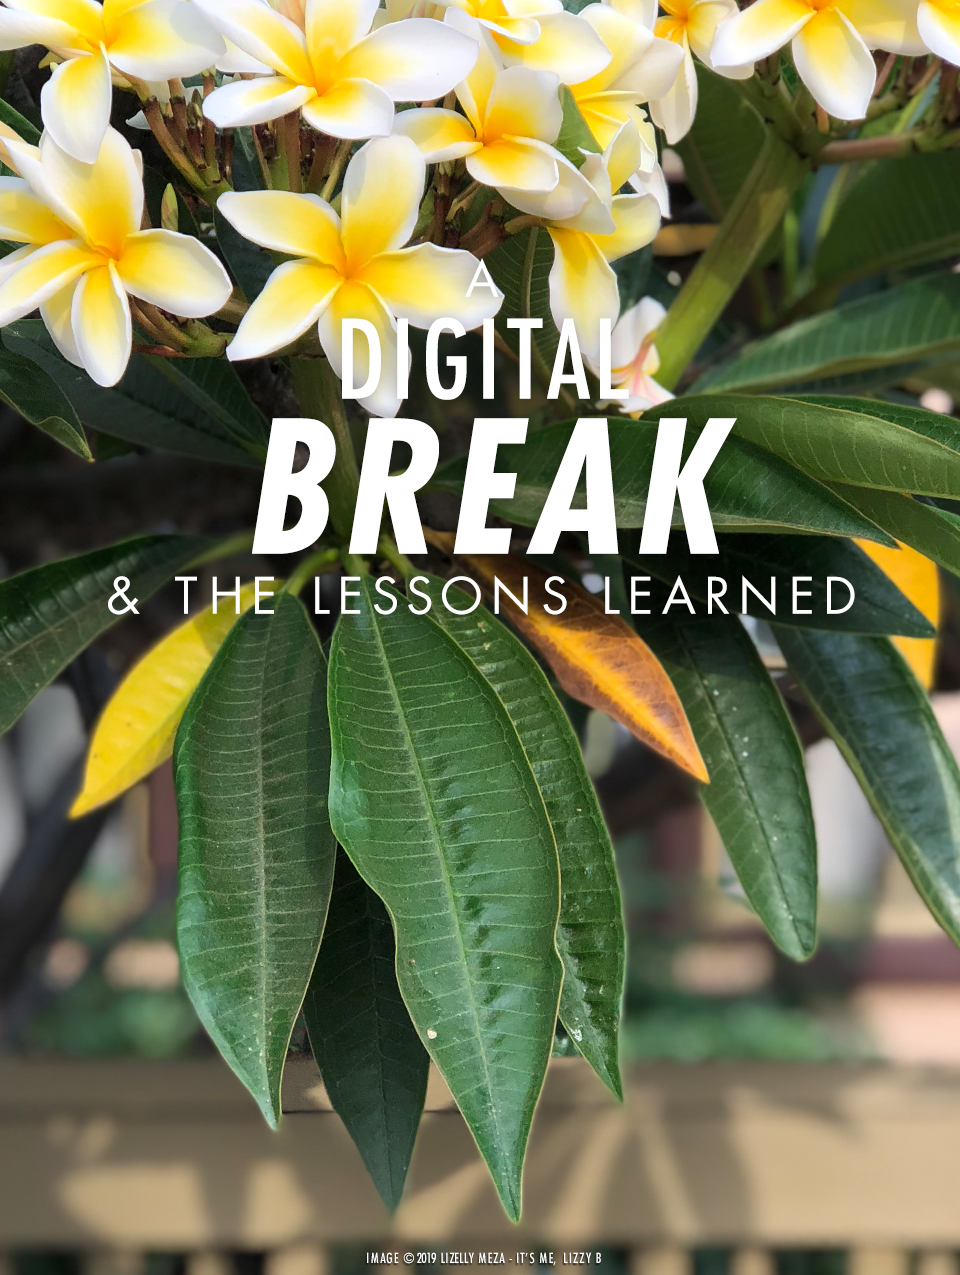 A Much-Needed Digital Break & The Lessons Learned // It's Me, Lizzy B - Musings on Life, Business, & The Pursuit of Curiosity // Personal blog of Lizelly Meza